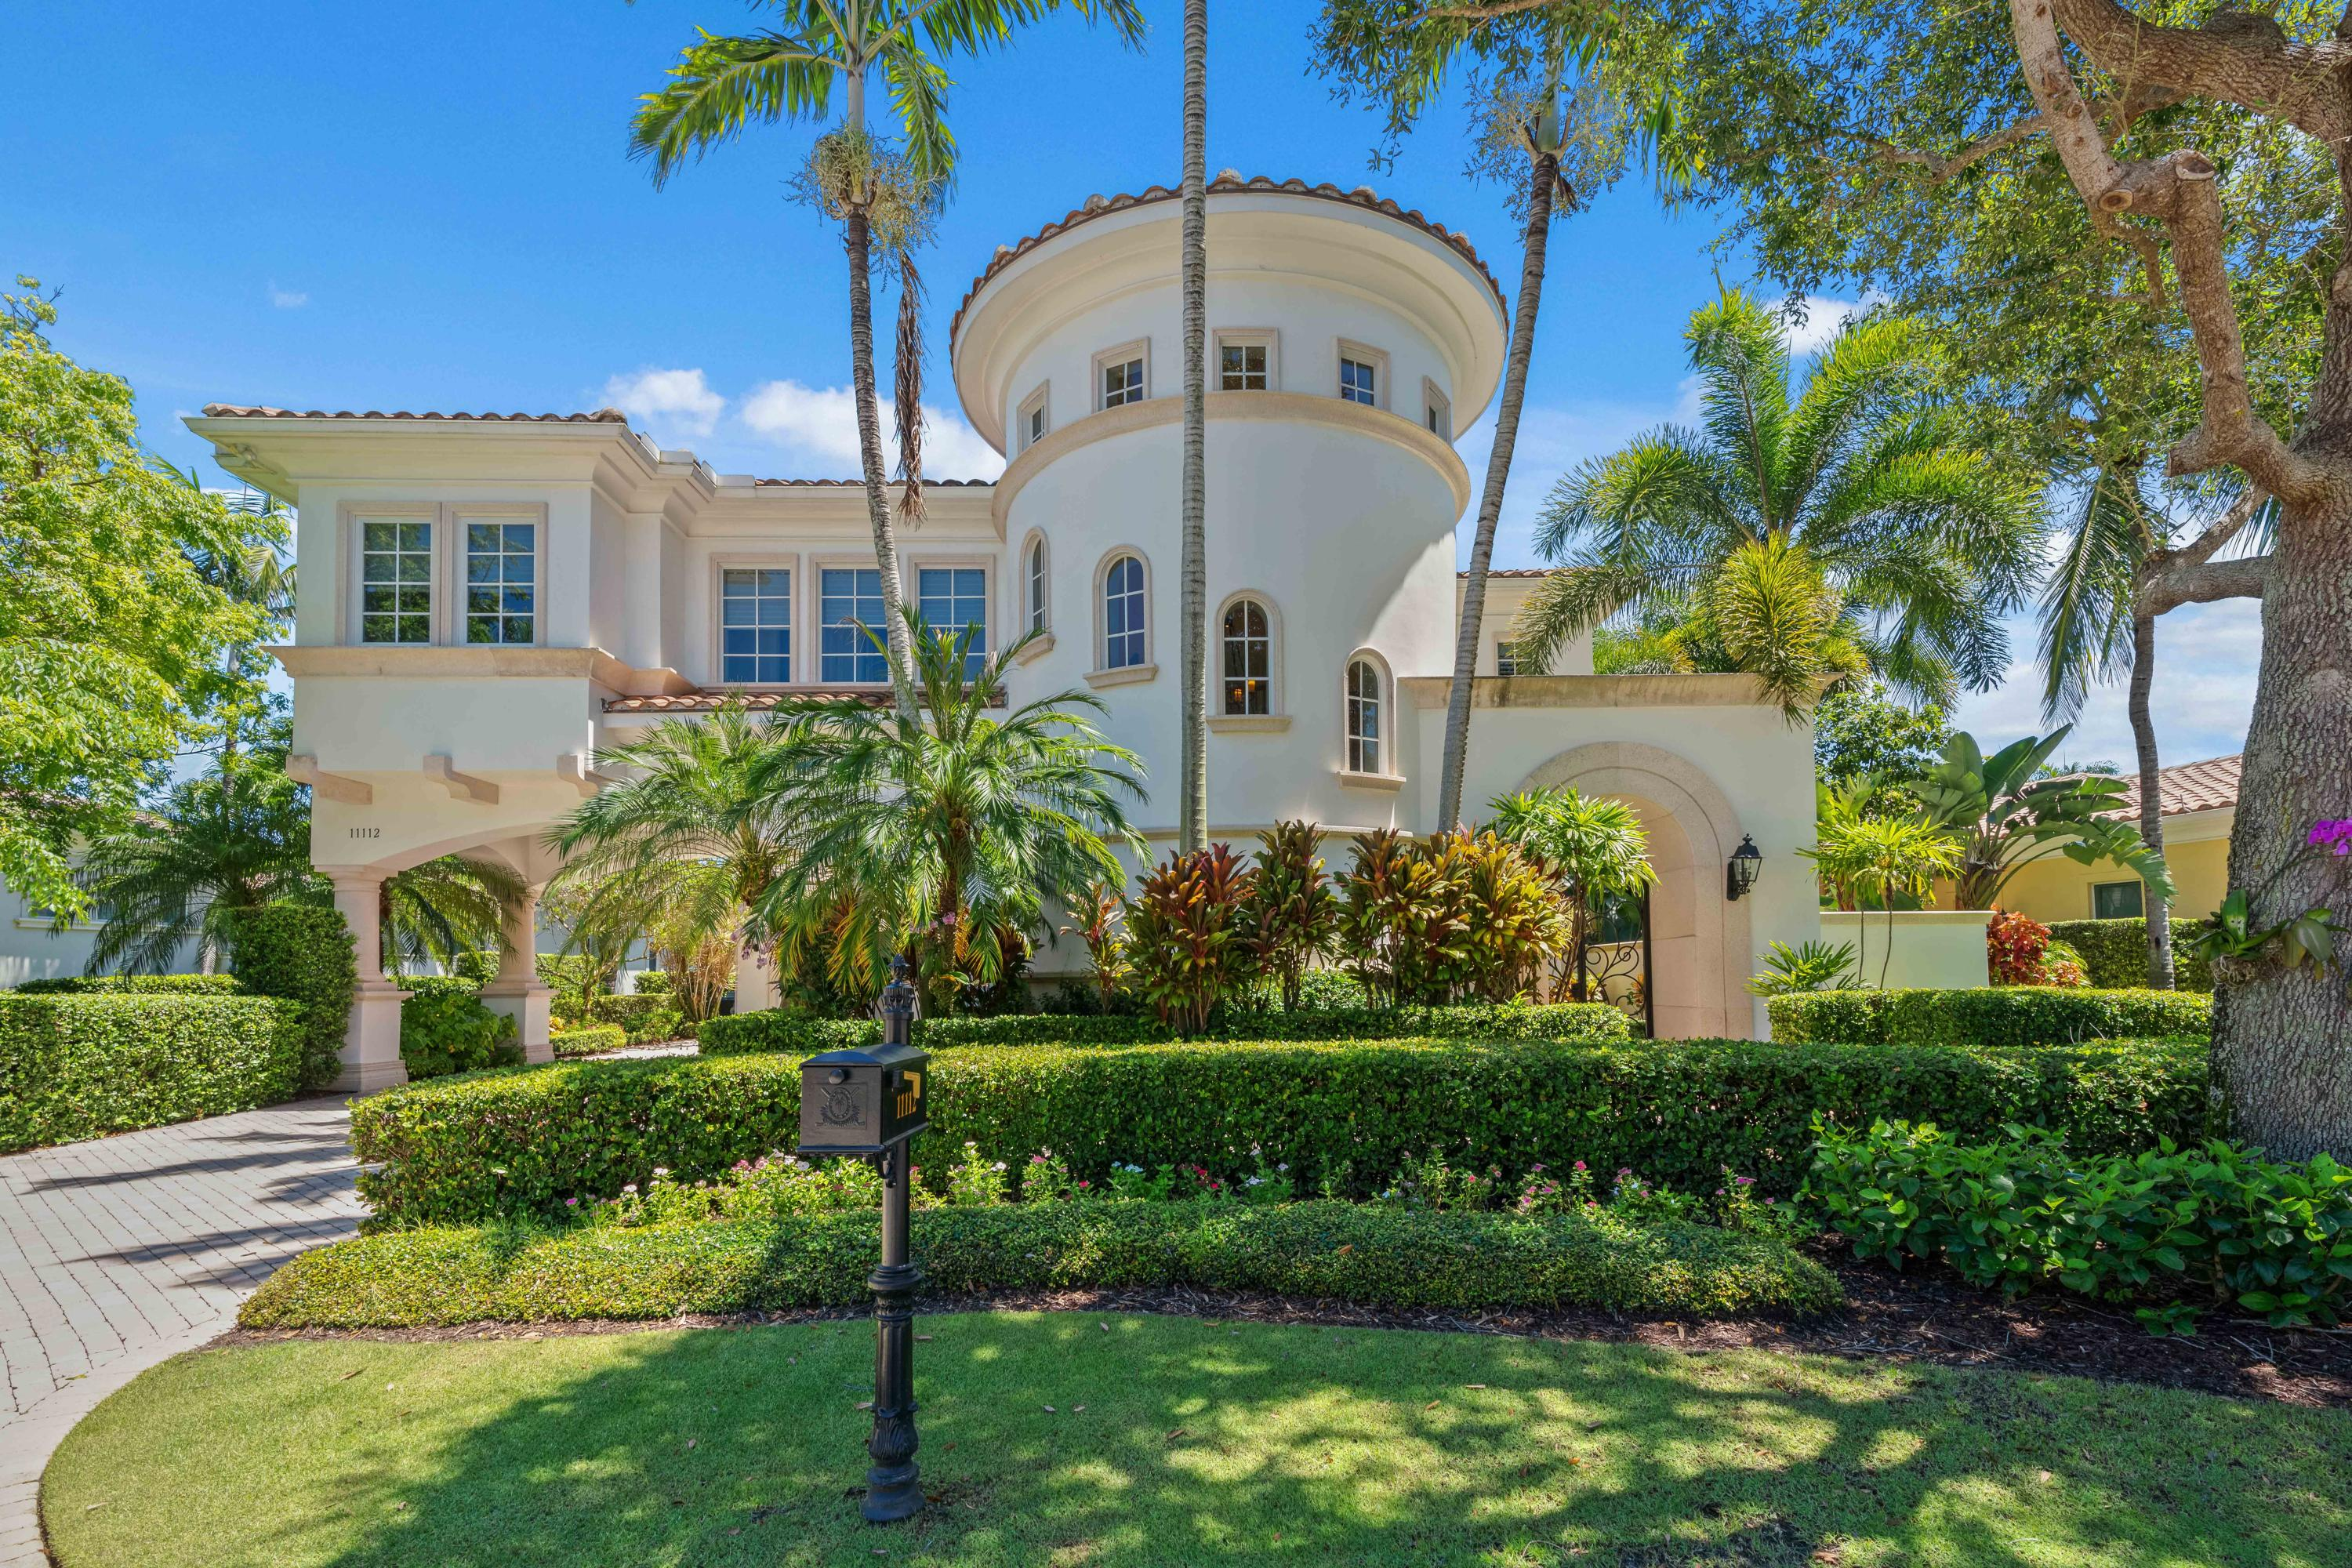 11112 Green Bayberry Drive, Palm Beach Gardens, Florida 33418, 4 Bedrooms Bedrooms, ,4.2 BathroomsBathrooms,A,Single family,Green Bayberry,RX-10643868